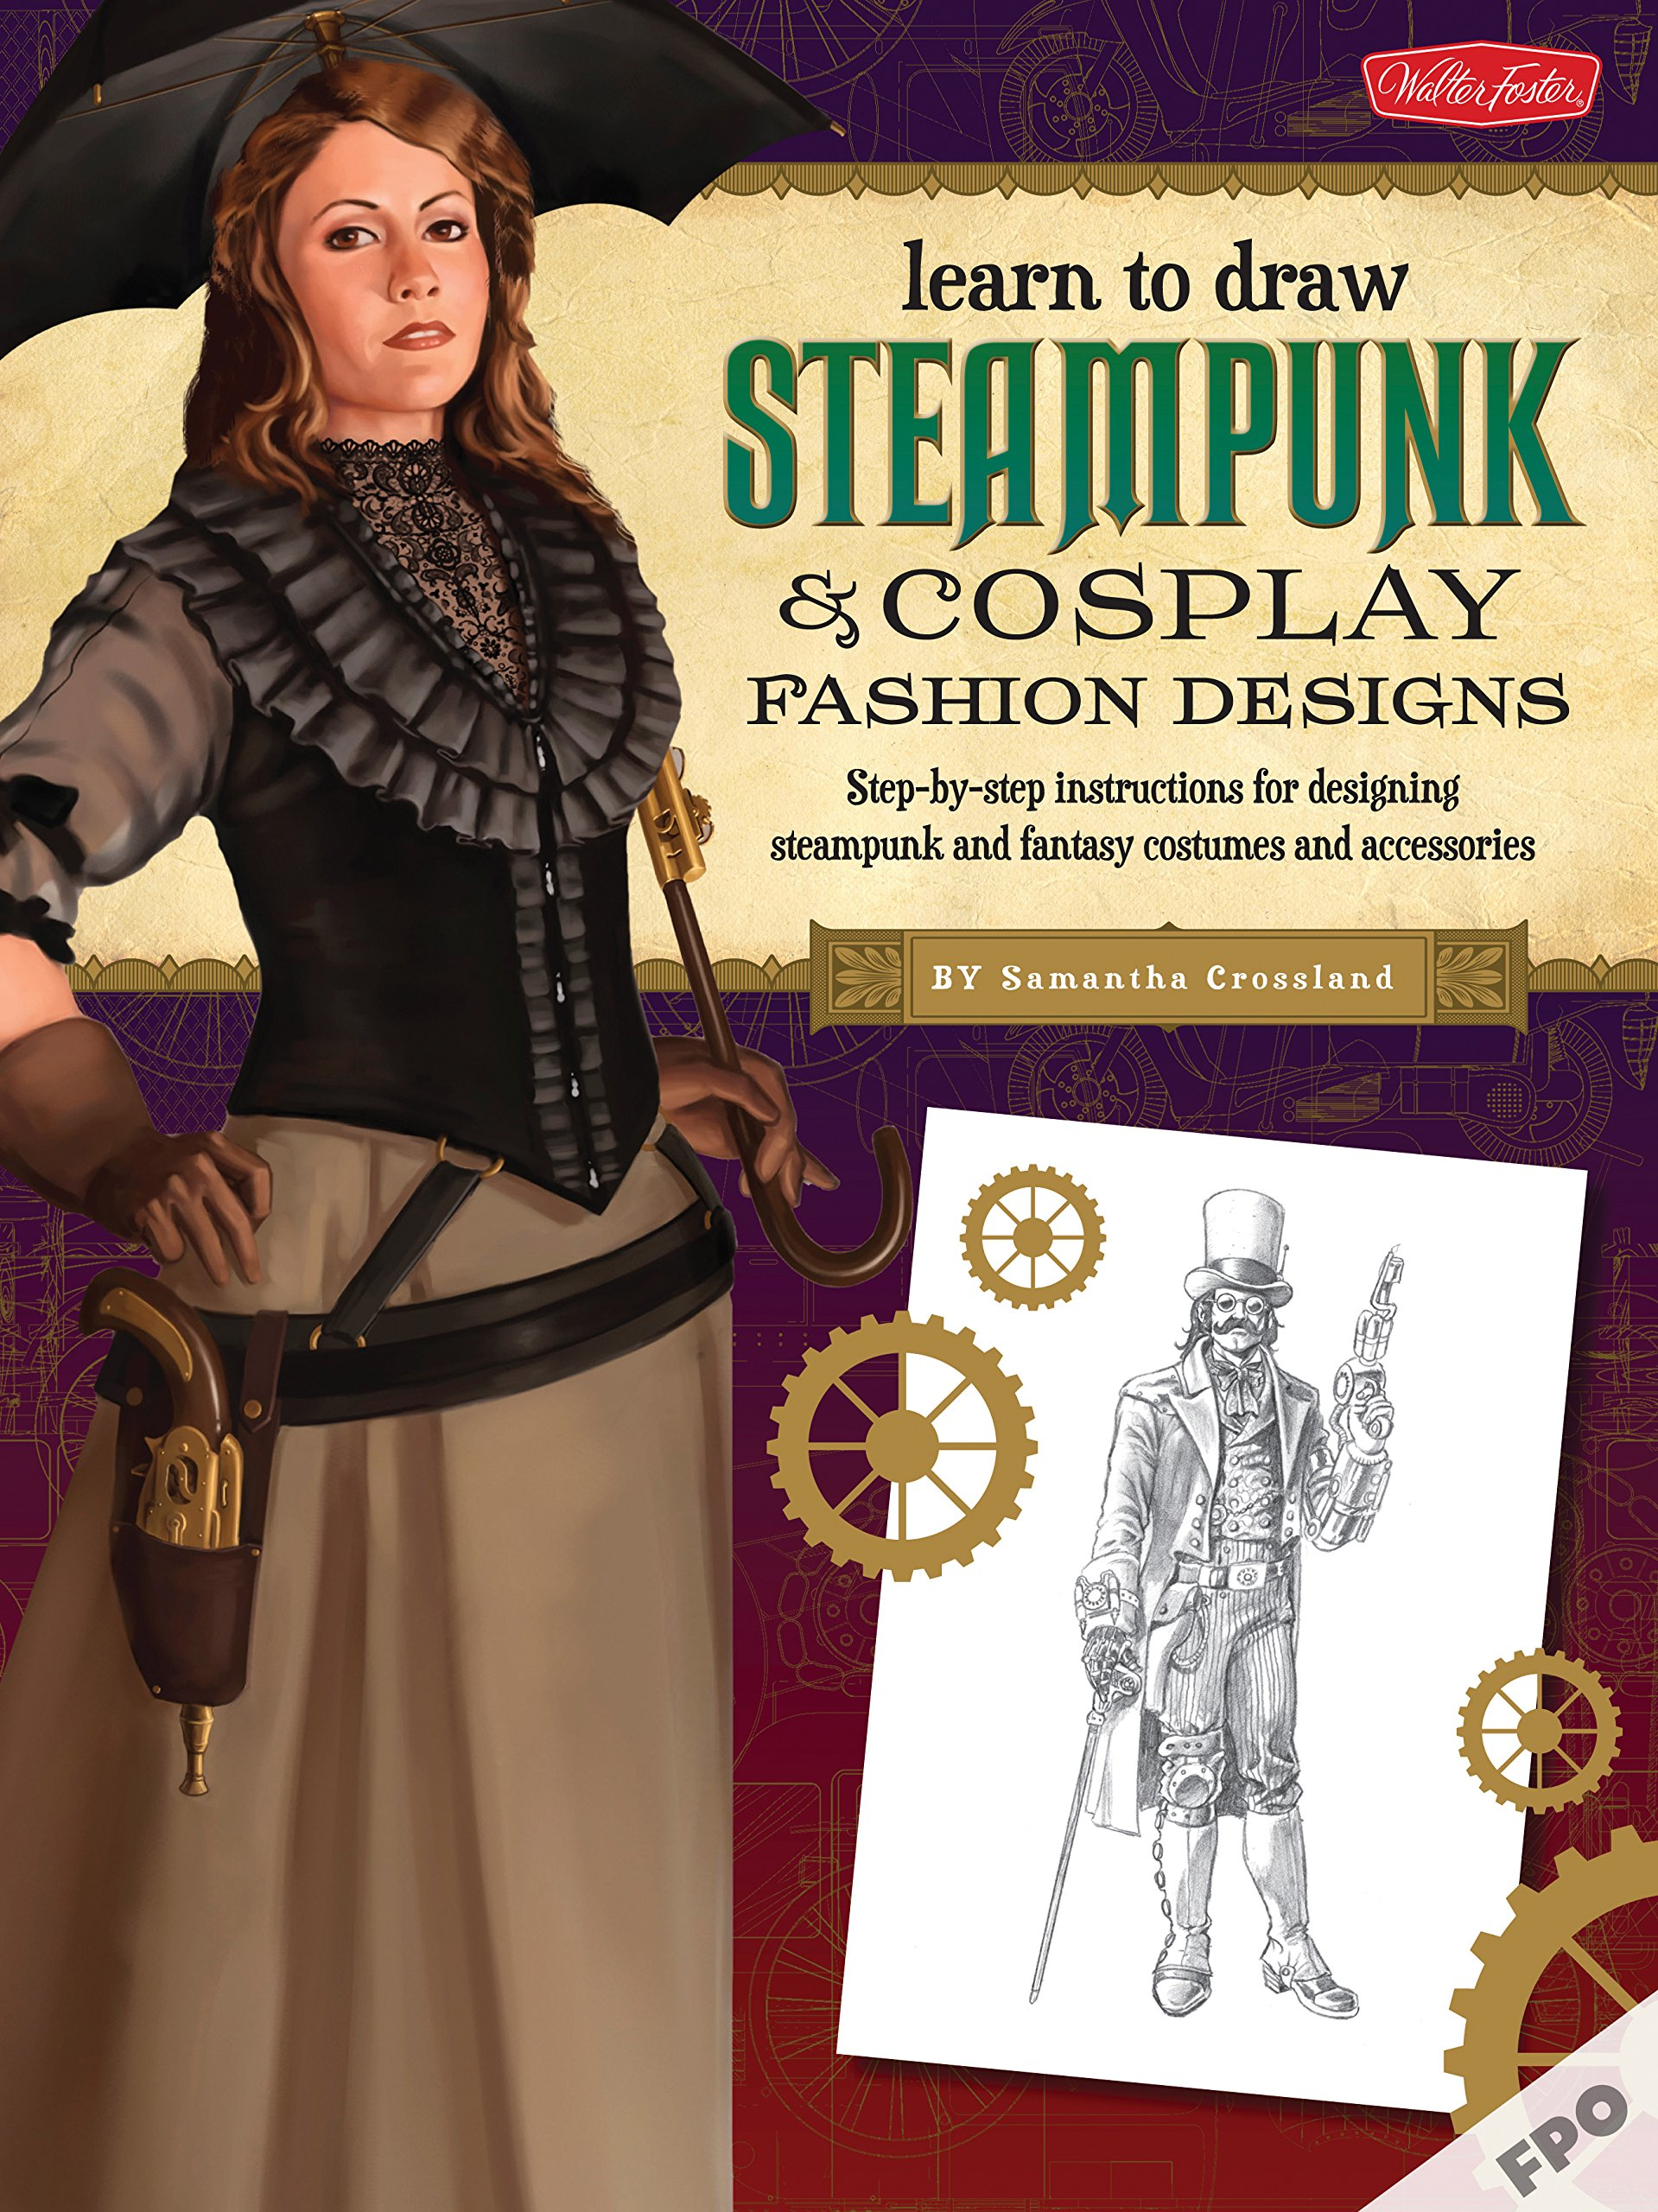 Steampunk Cosplay Fashion Design Illustration More Than 50 Ideas For Learning To Design Your Own Neo Victorian Costumes And Accessories Learn To Draw Crossland Samantha 9781600584985 Amazon Com Books